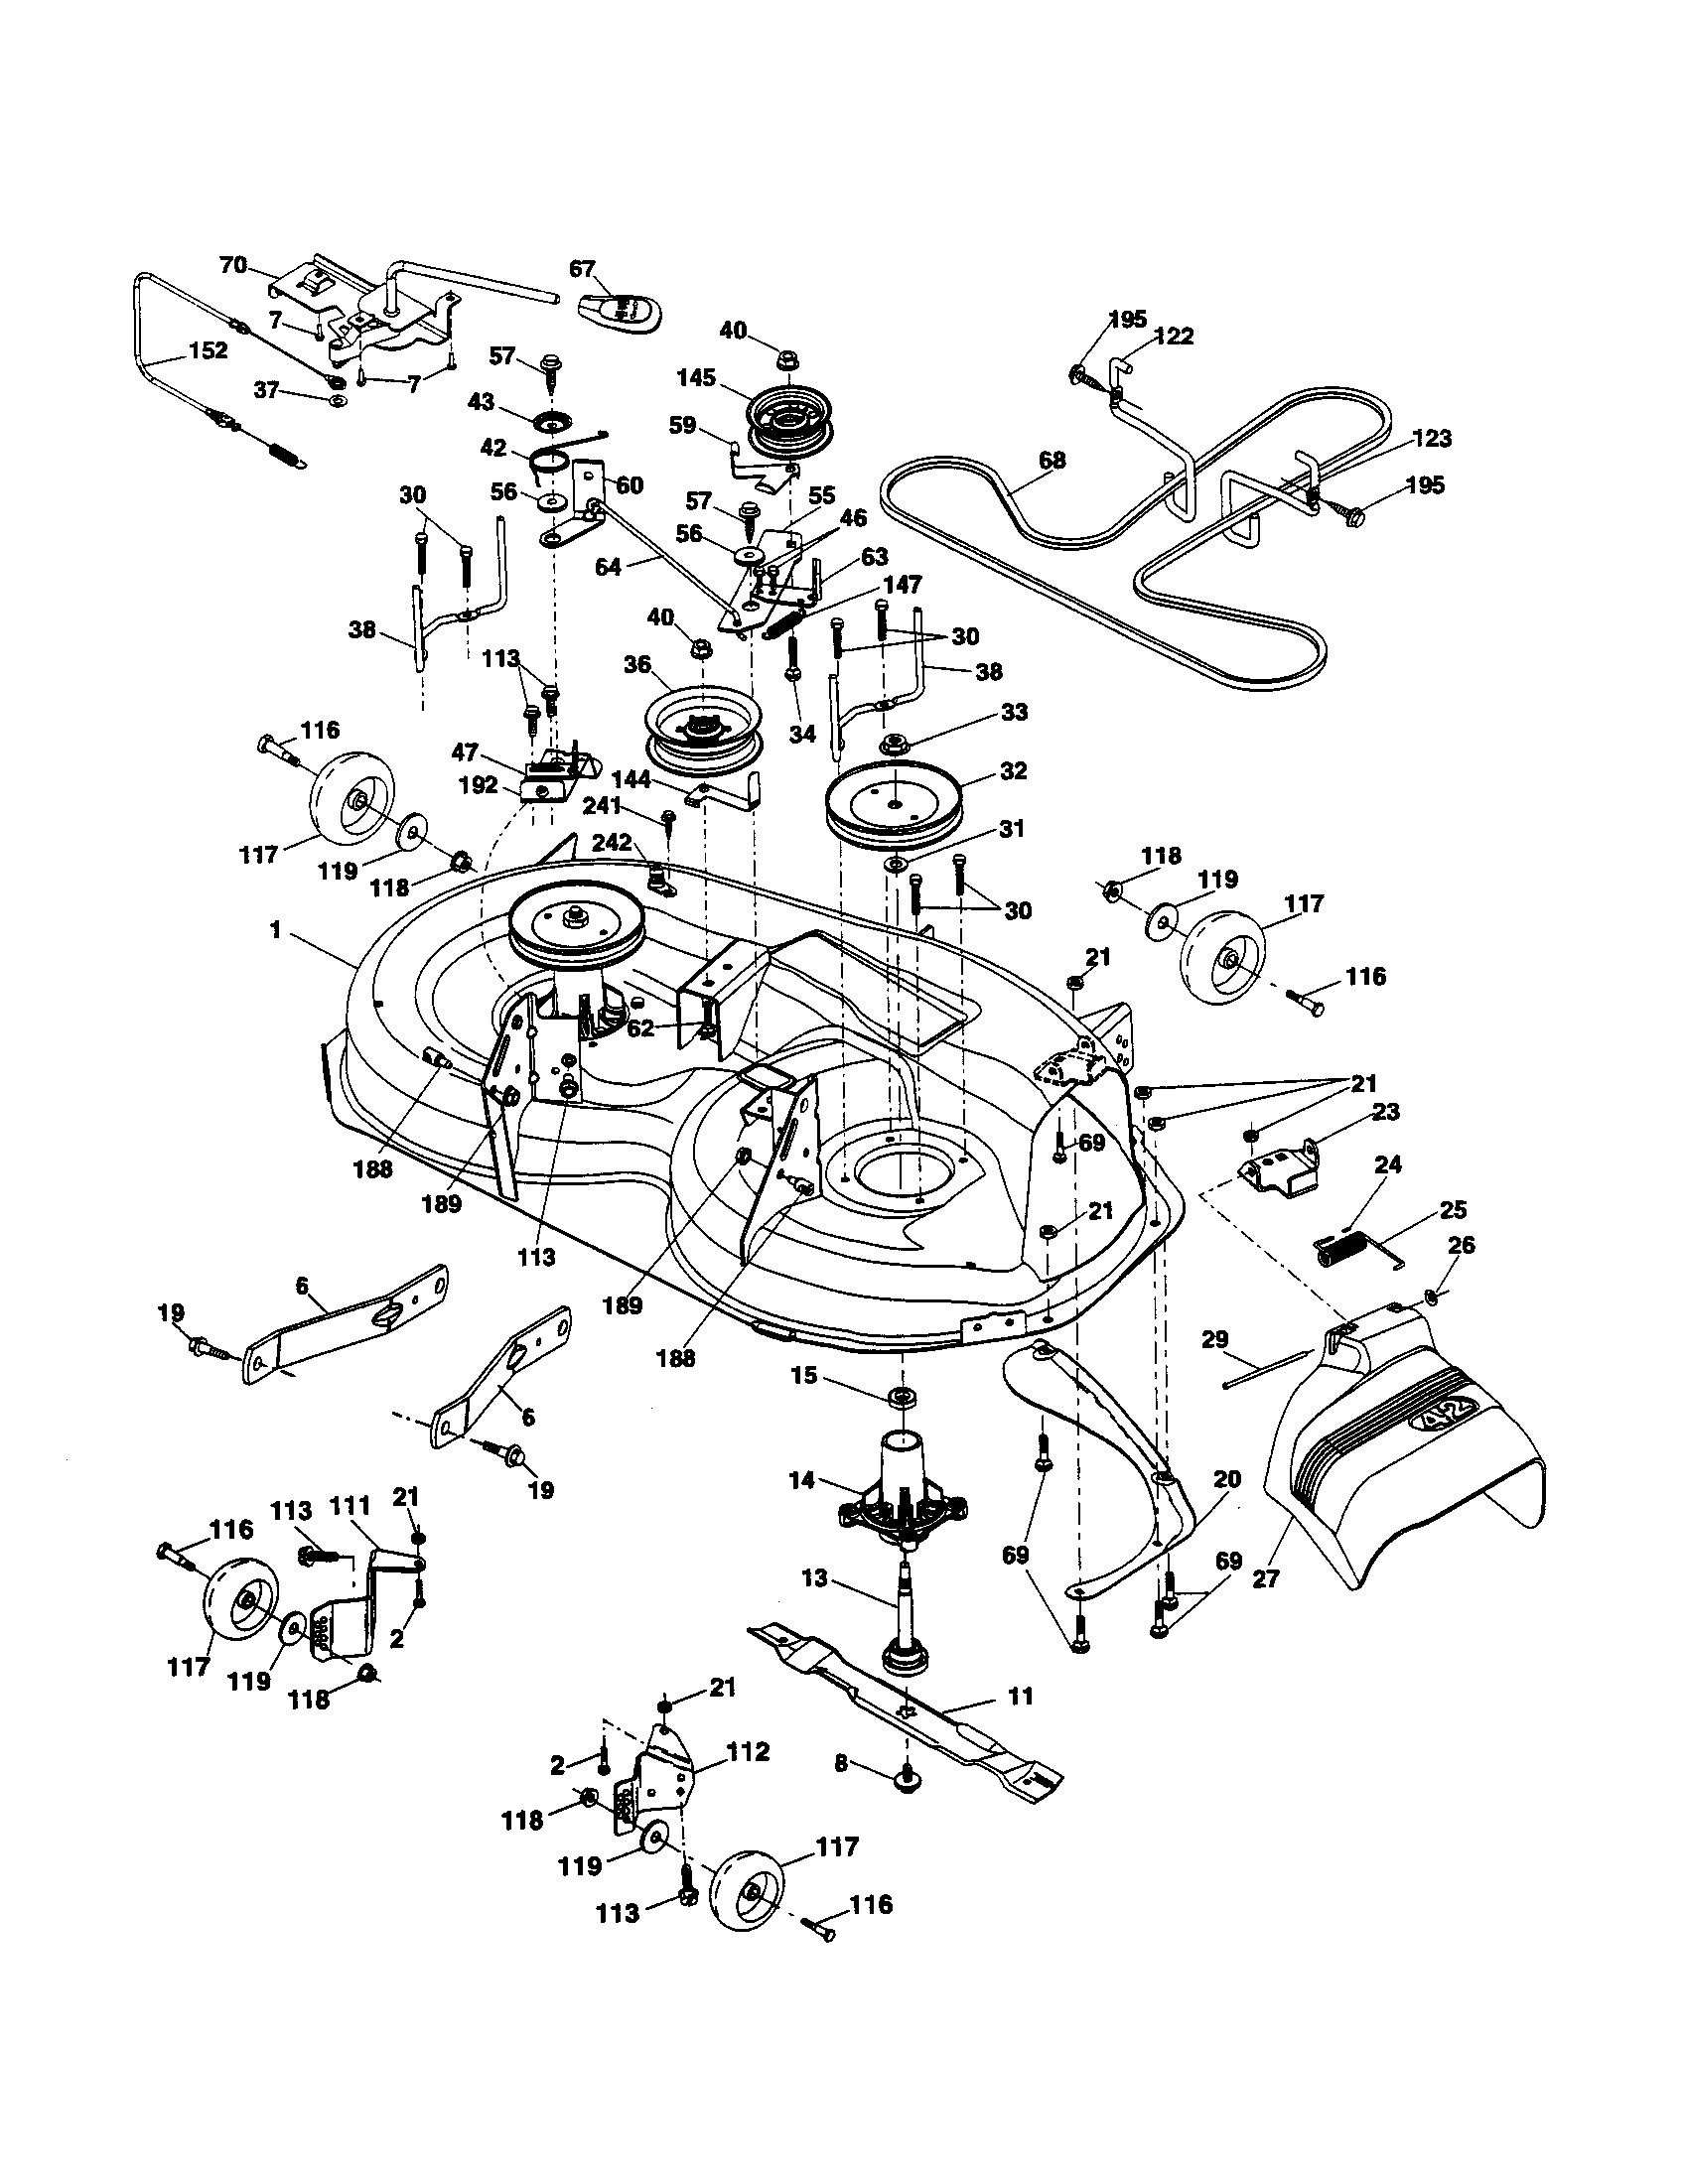 Ariens Lawn Mower Parts Diagram Model Walk Behind Lawnmower Deck Engine And List For Snapper Walkbehindlawnmower Chart Gallery Of